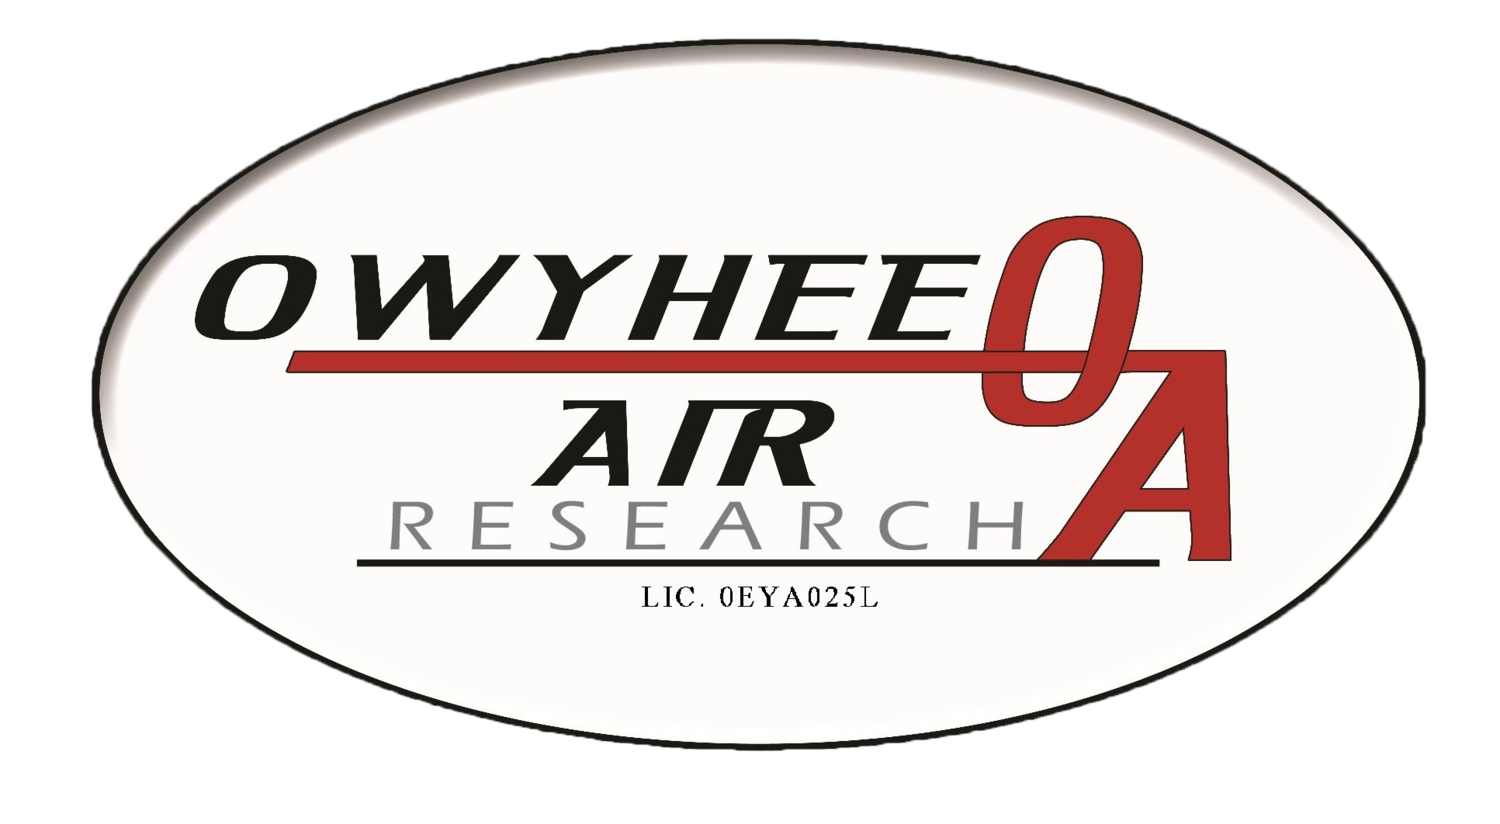 Owyhee Air Research